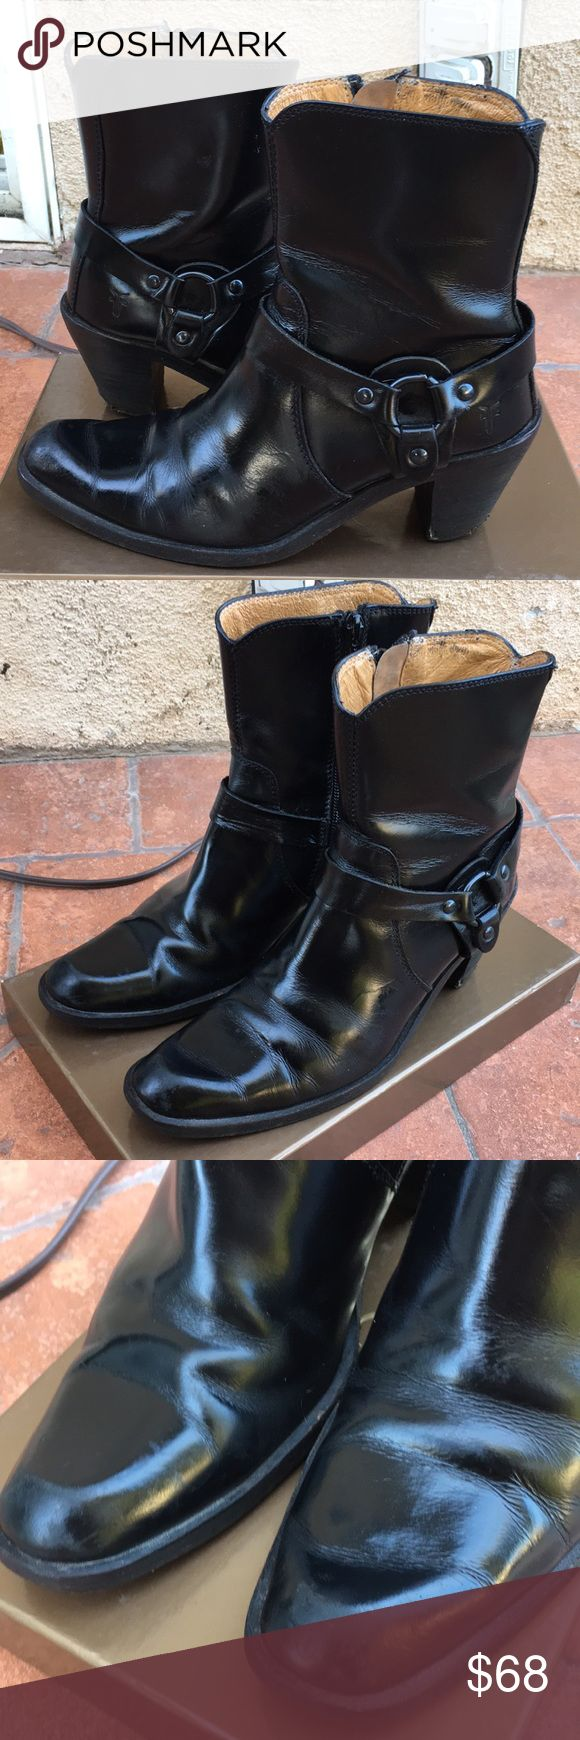 Frye tabitha harness women's black boots 5.5b Retail for $328 . Pre owned but sill in good shape Frye Shoes Ankle Boots & Booties